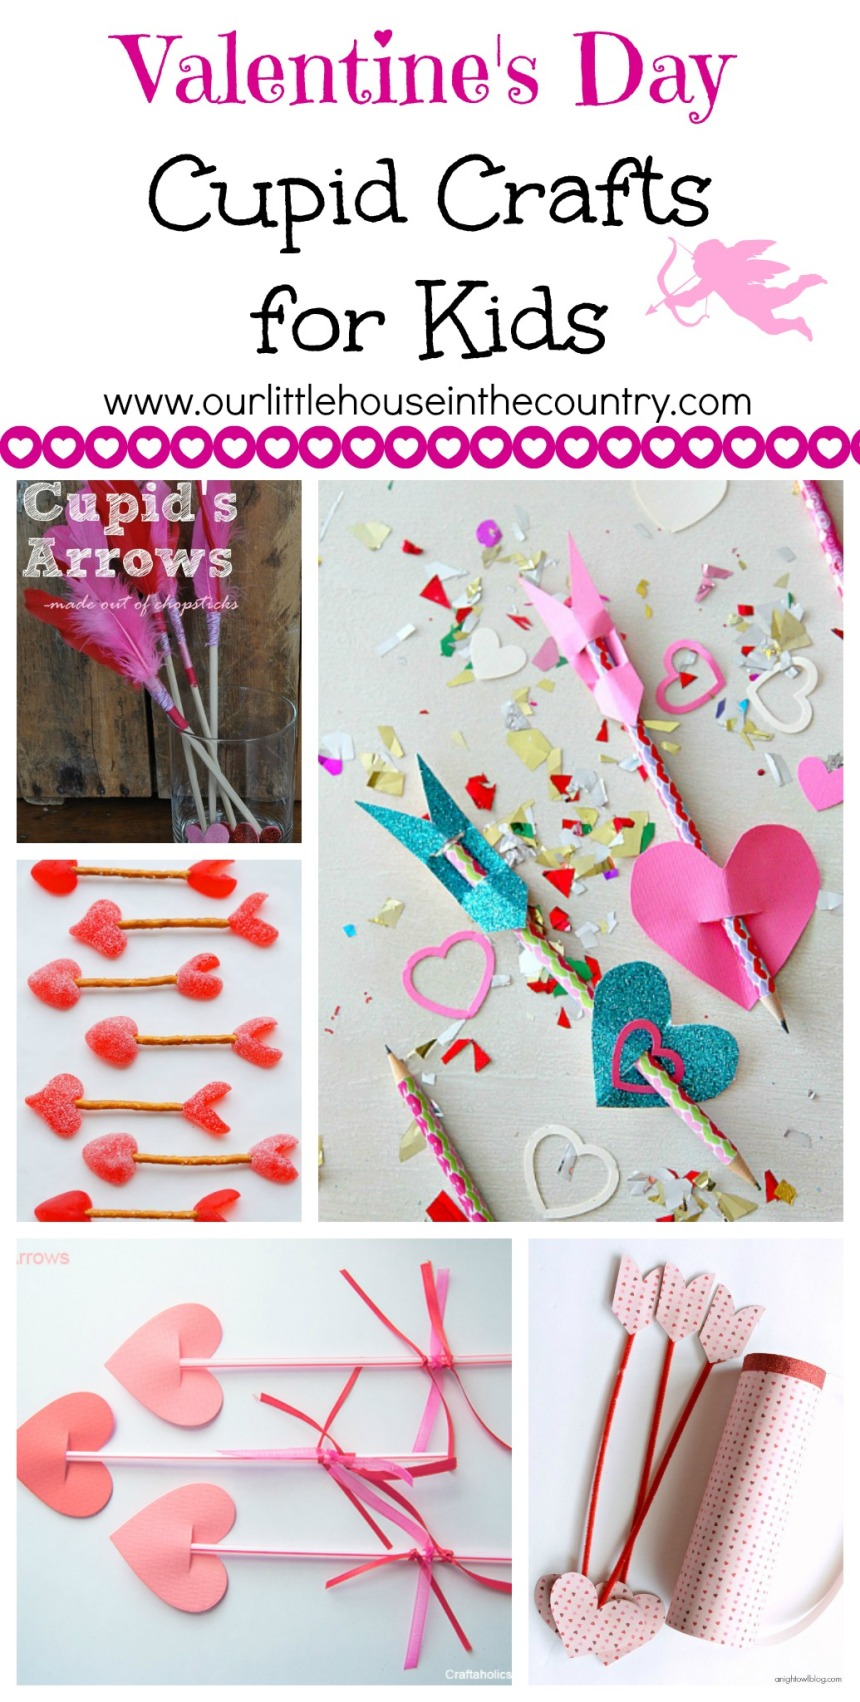 Valentine's Day Cupid Crafts for Kids - Our Little House in the Country